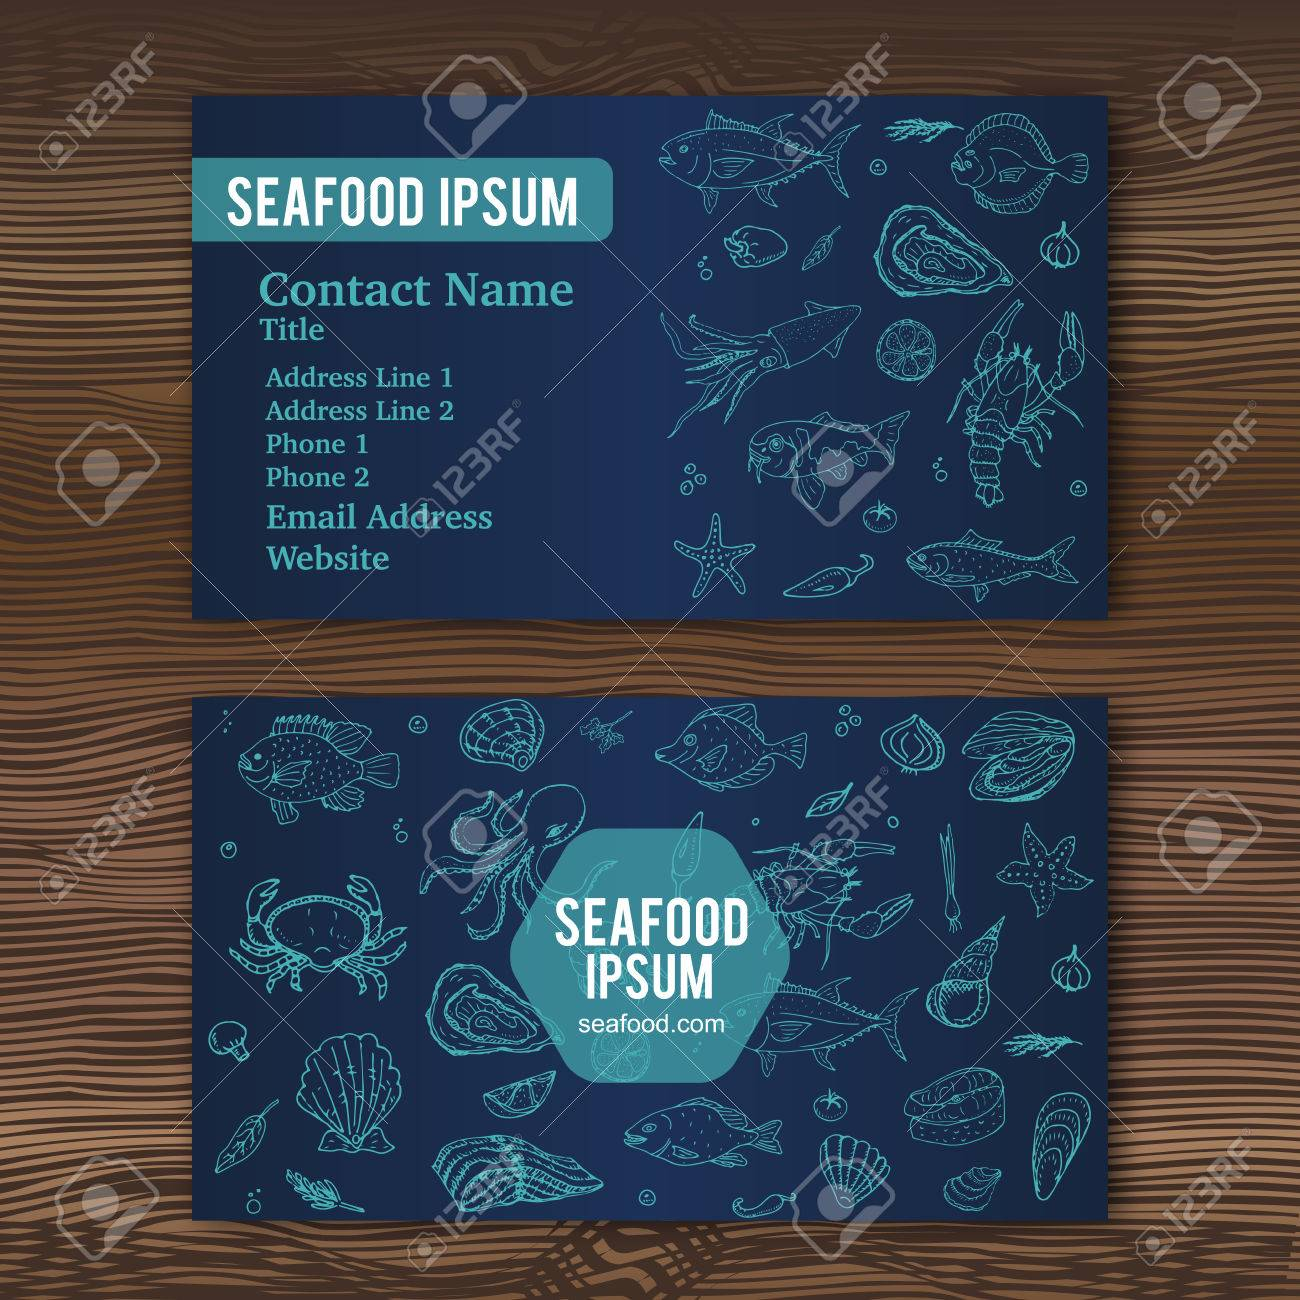 Business card template with hand drawn doodle seafood icons for banco de imagens business card template with hand drawn doodle seafood icons for restaurant vector illustration cartoon fresh sea food symbols fish reheart Gallery